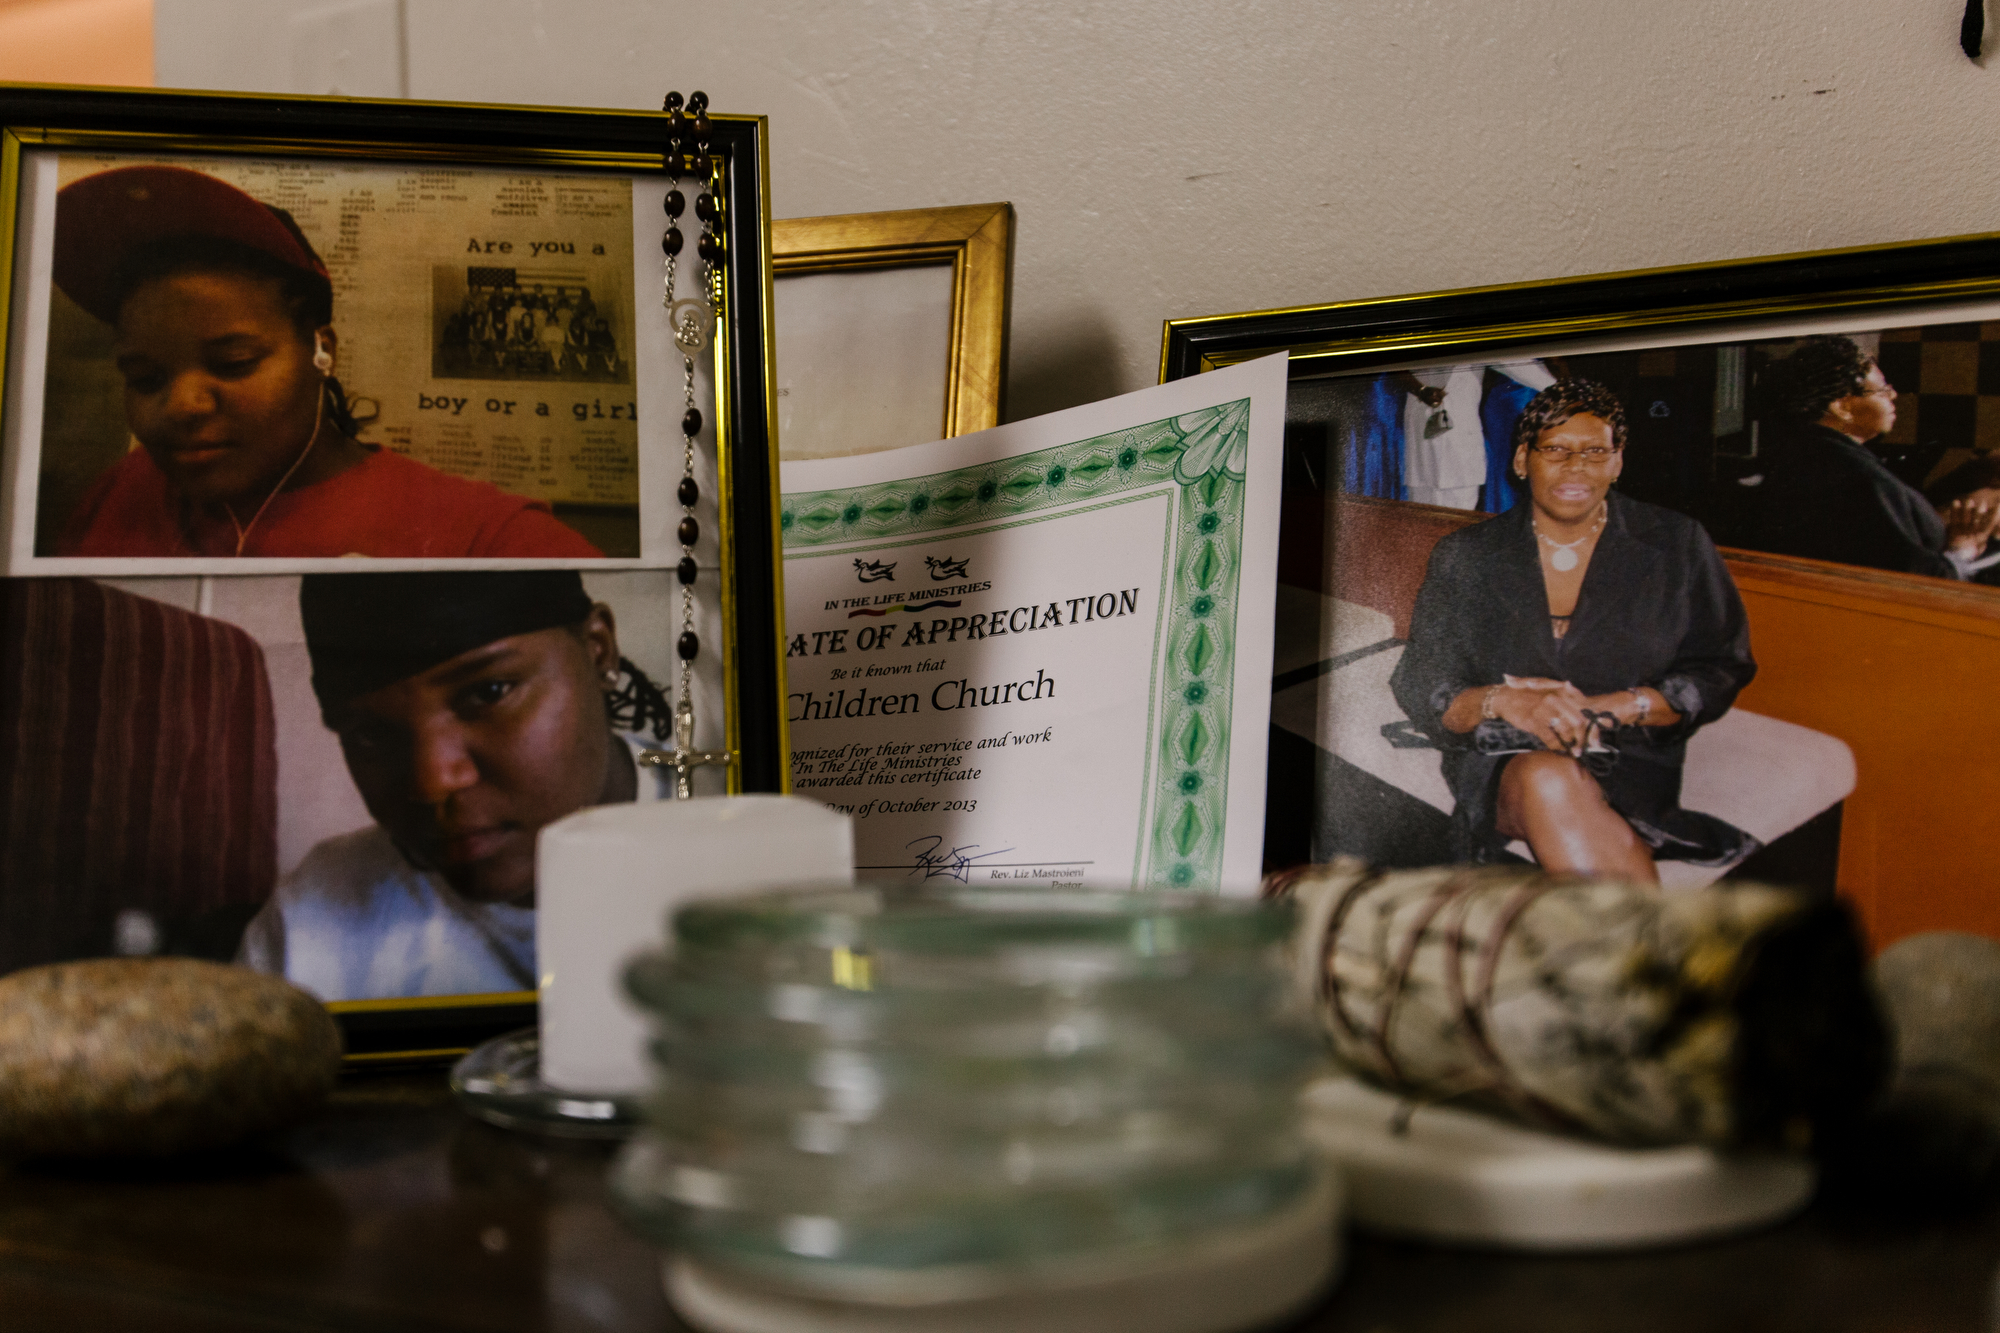 Members of the church often go through hard times due the intersectional hardship of their sexuality, their race, their class. Here, photos of past members of the church that committed suicide, serve as a mini-memorial in the church's office.